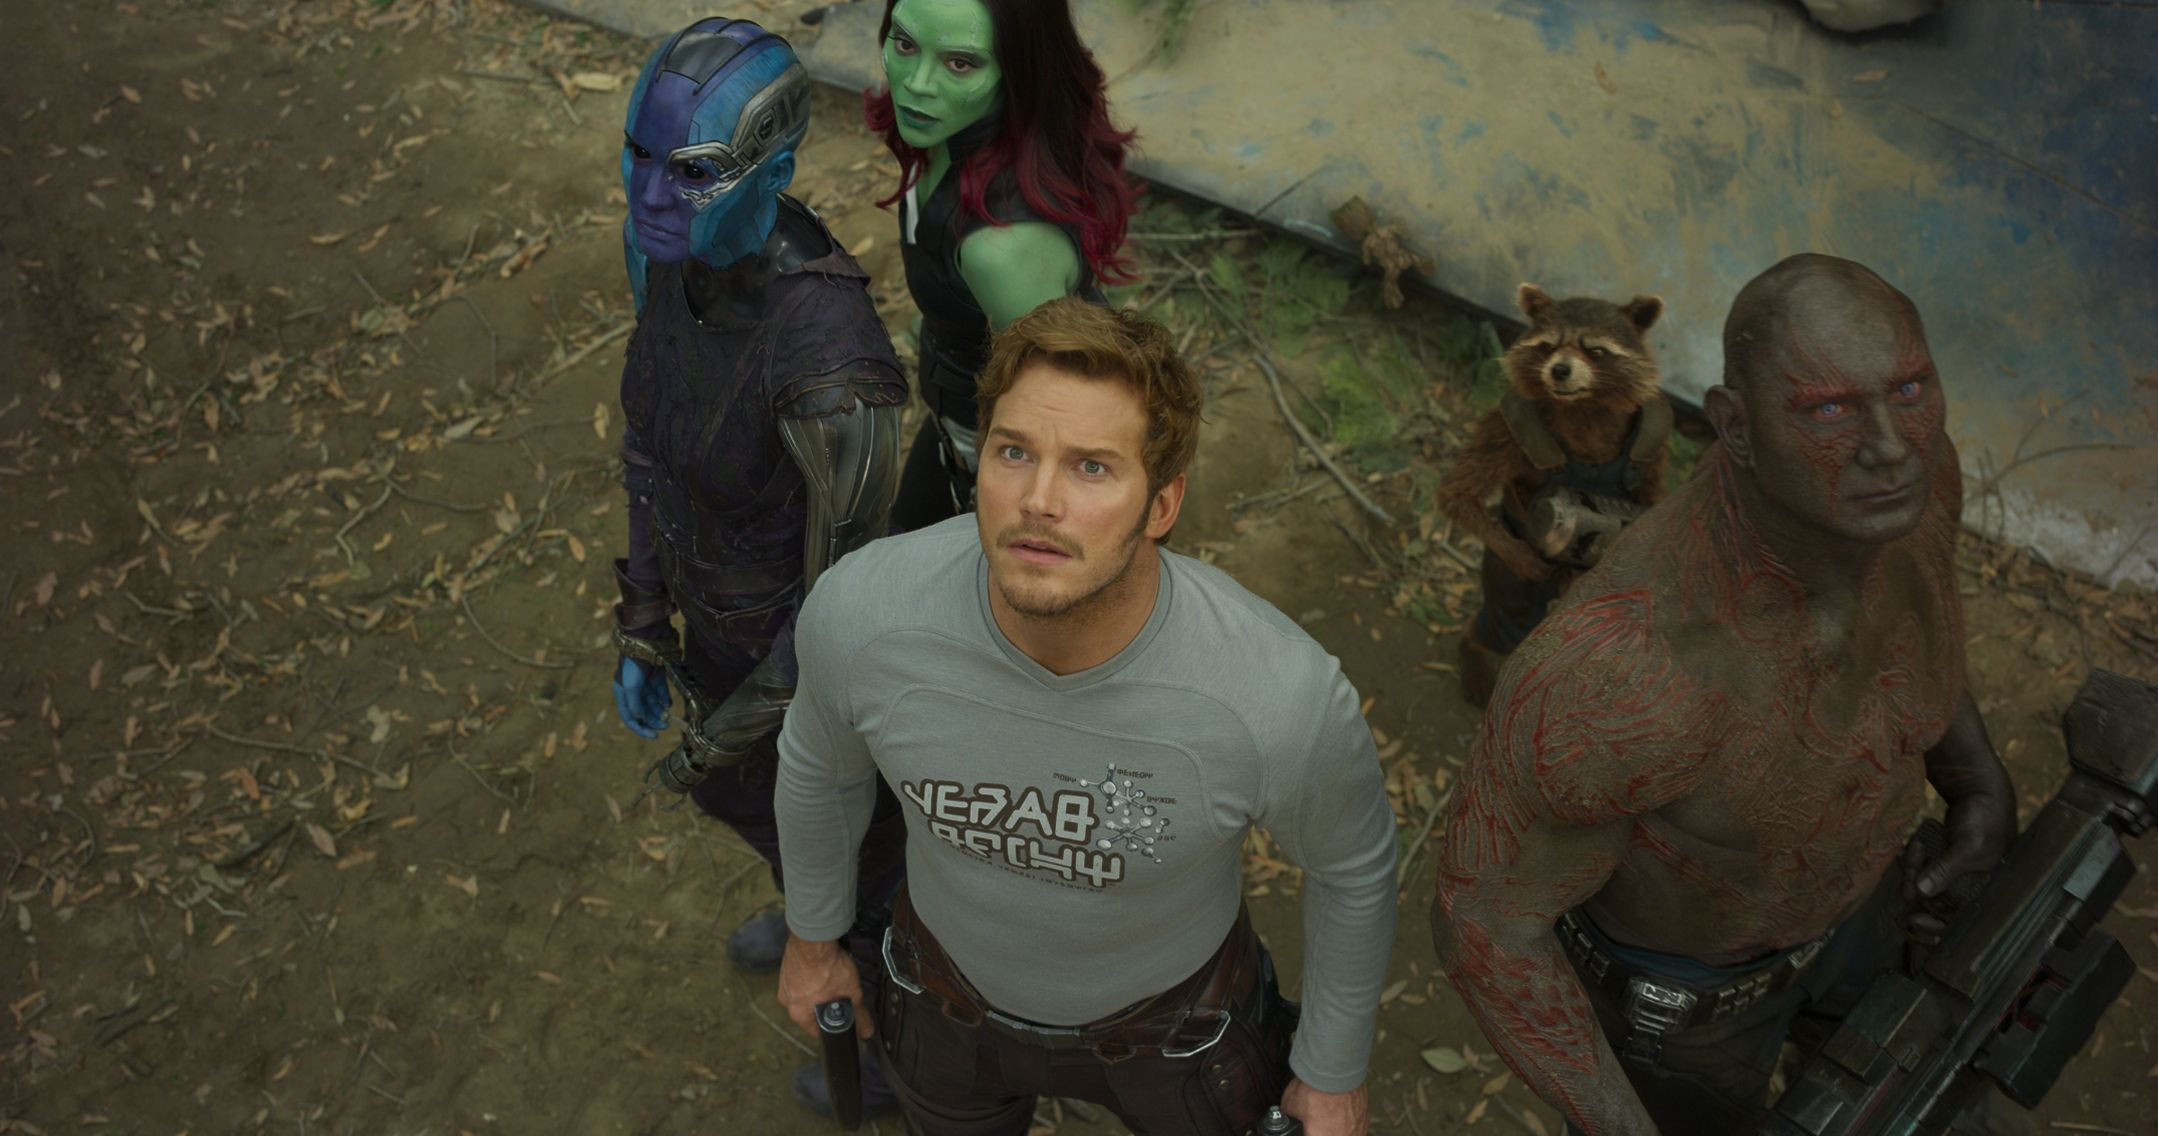 Go Behind The Scenes of 'Guardians Of The Galaxy Vol. 2'